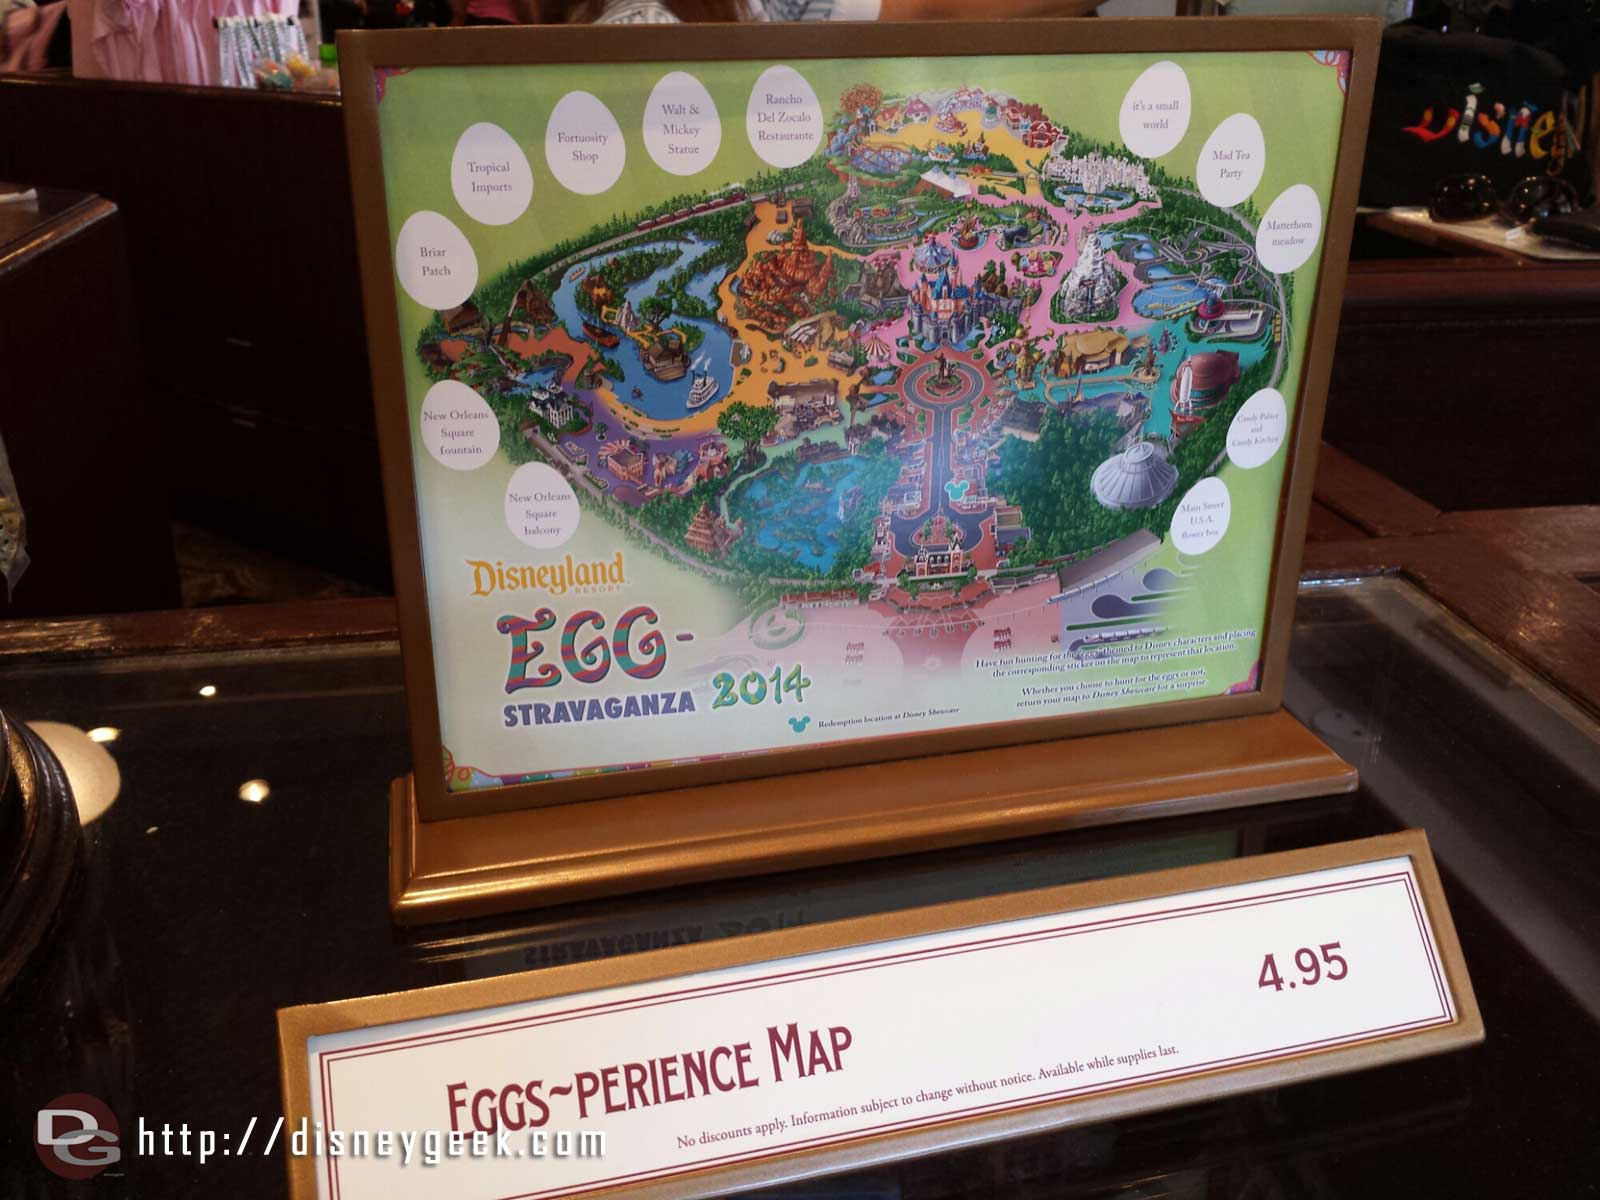 An Easter egg hunt kicked off yesterday.  Here is the #Disneyland map, DCA has its own